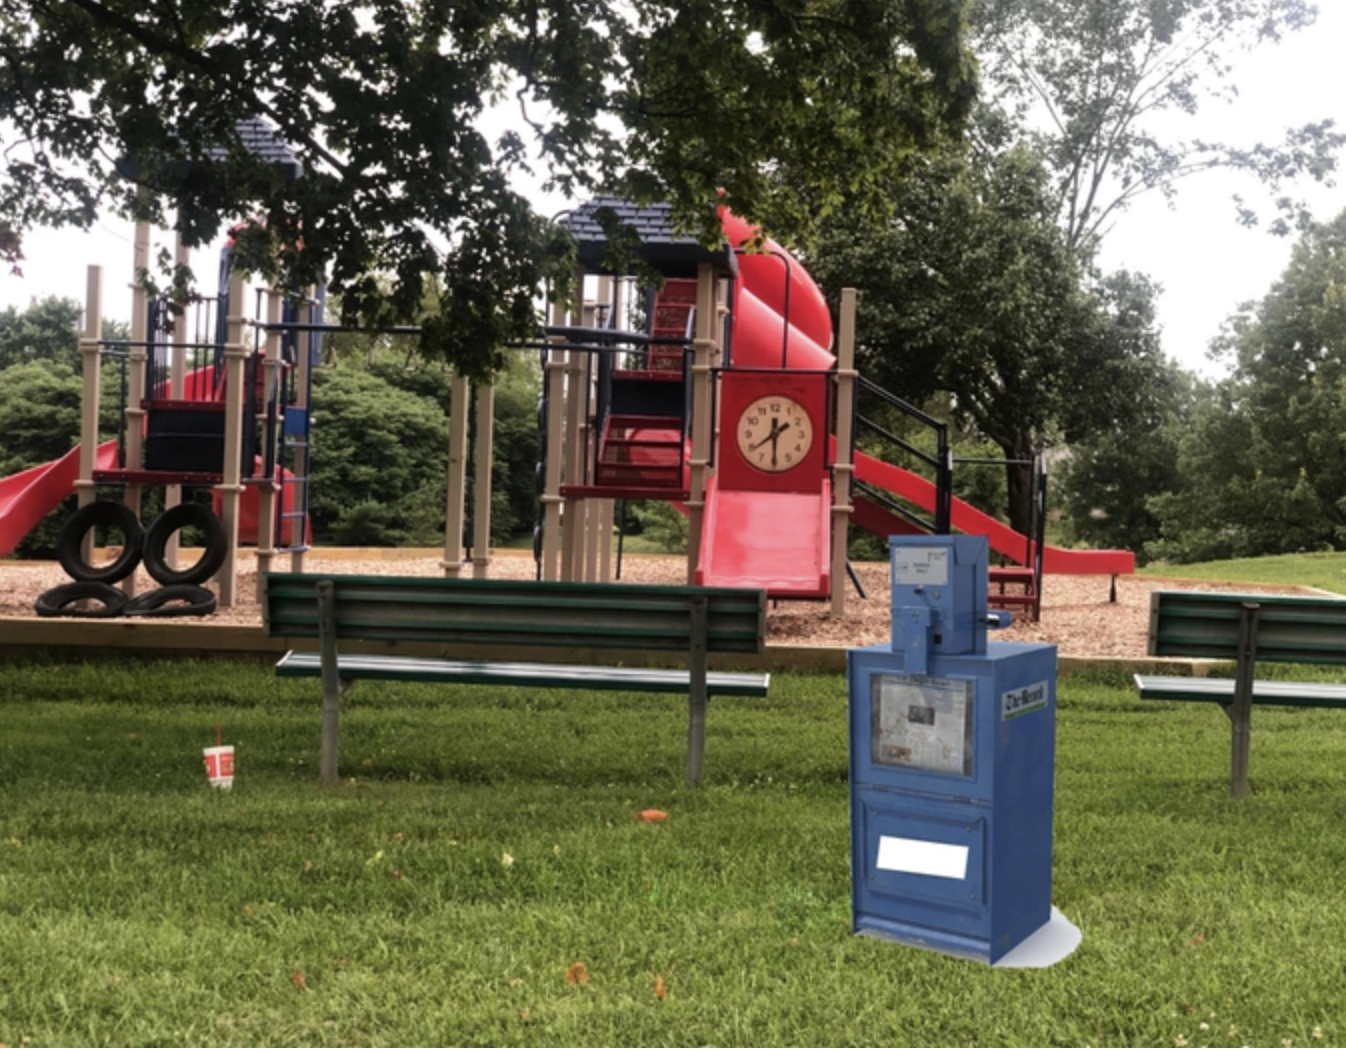 Screenshot from Kickstarter page showing concept of the dispenser in a public area.